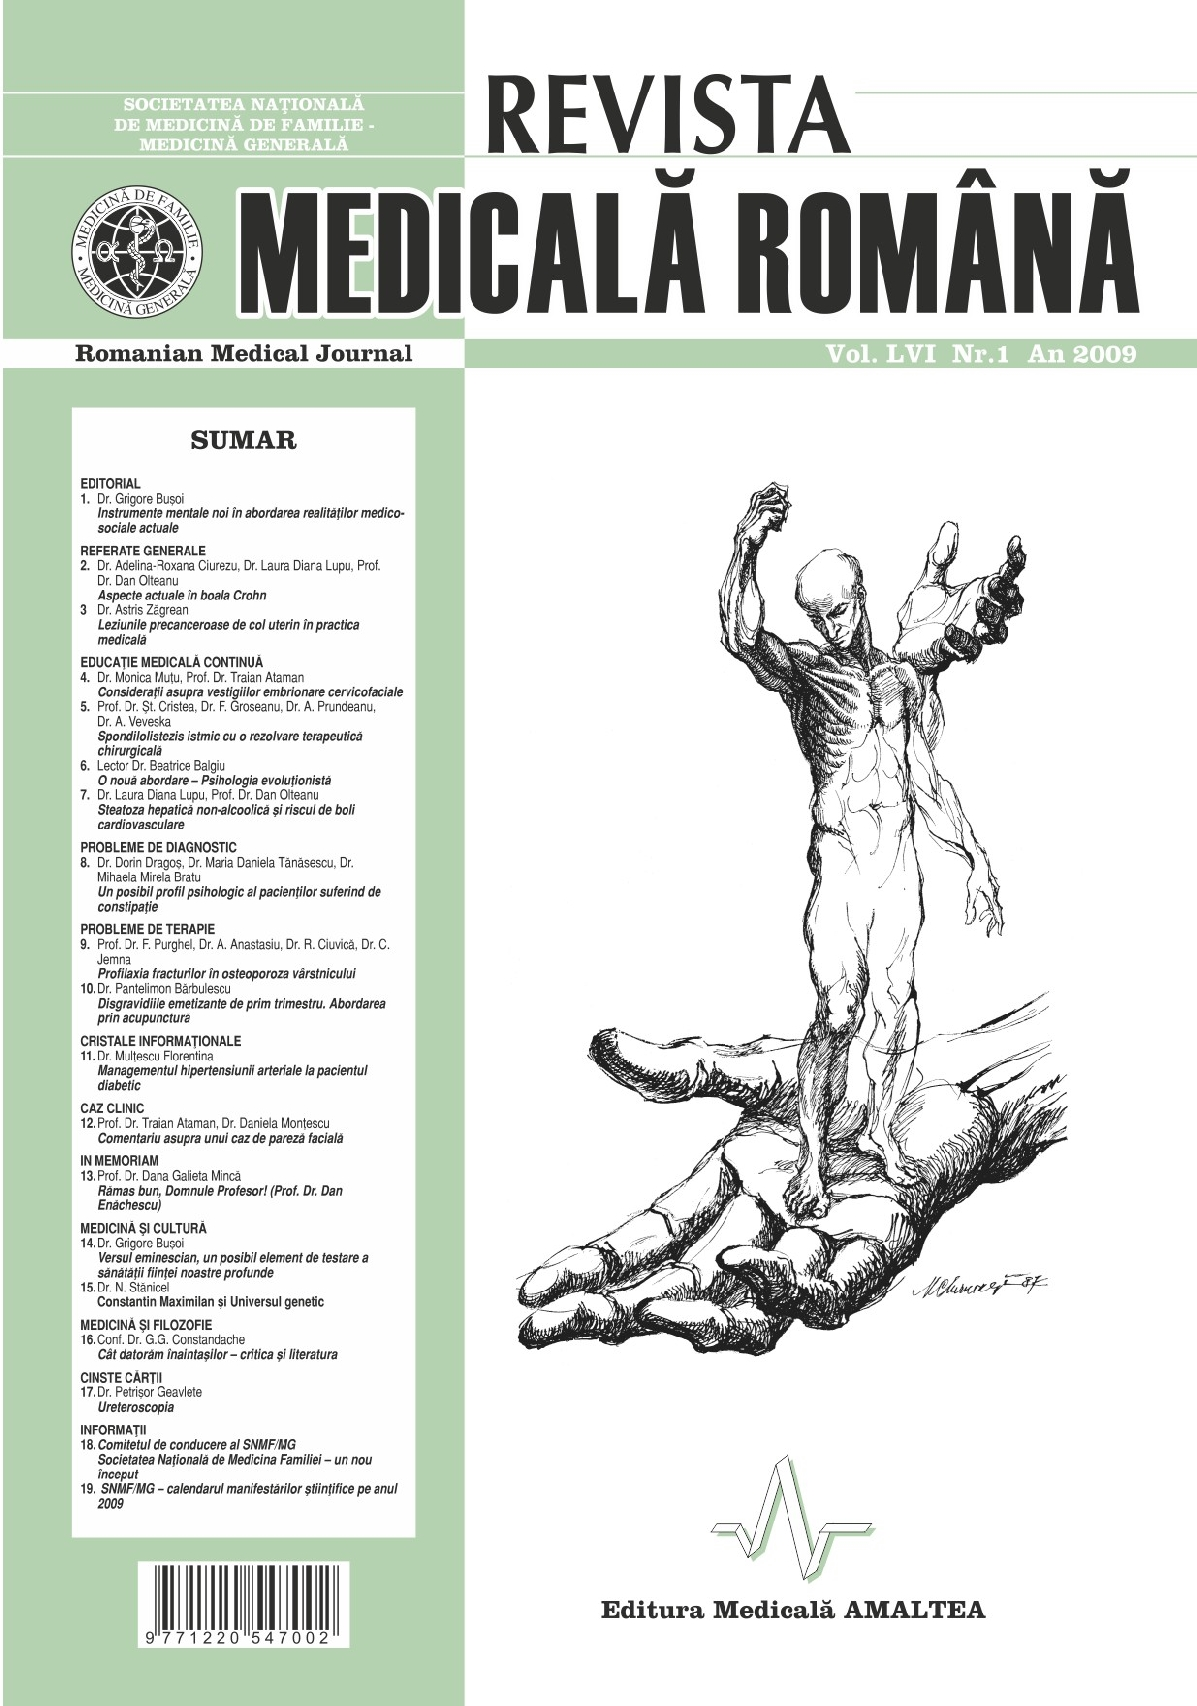 REVISTA MEDICALA ROMANA - Romanian Medical Journal, Vol. LVI, Nr. 1, An 2009